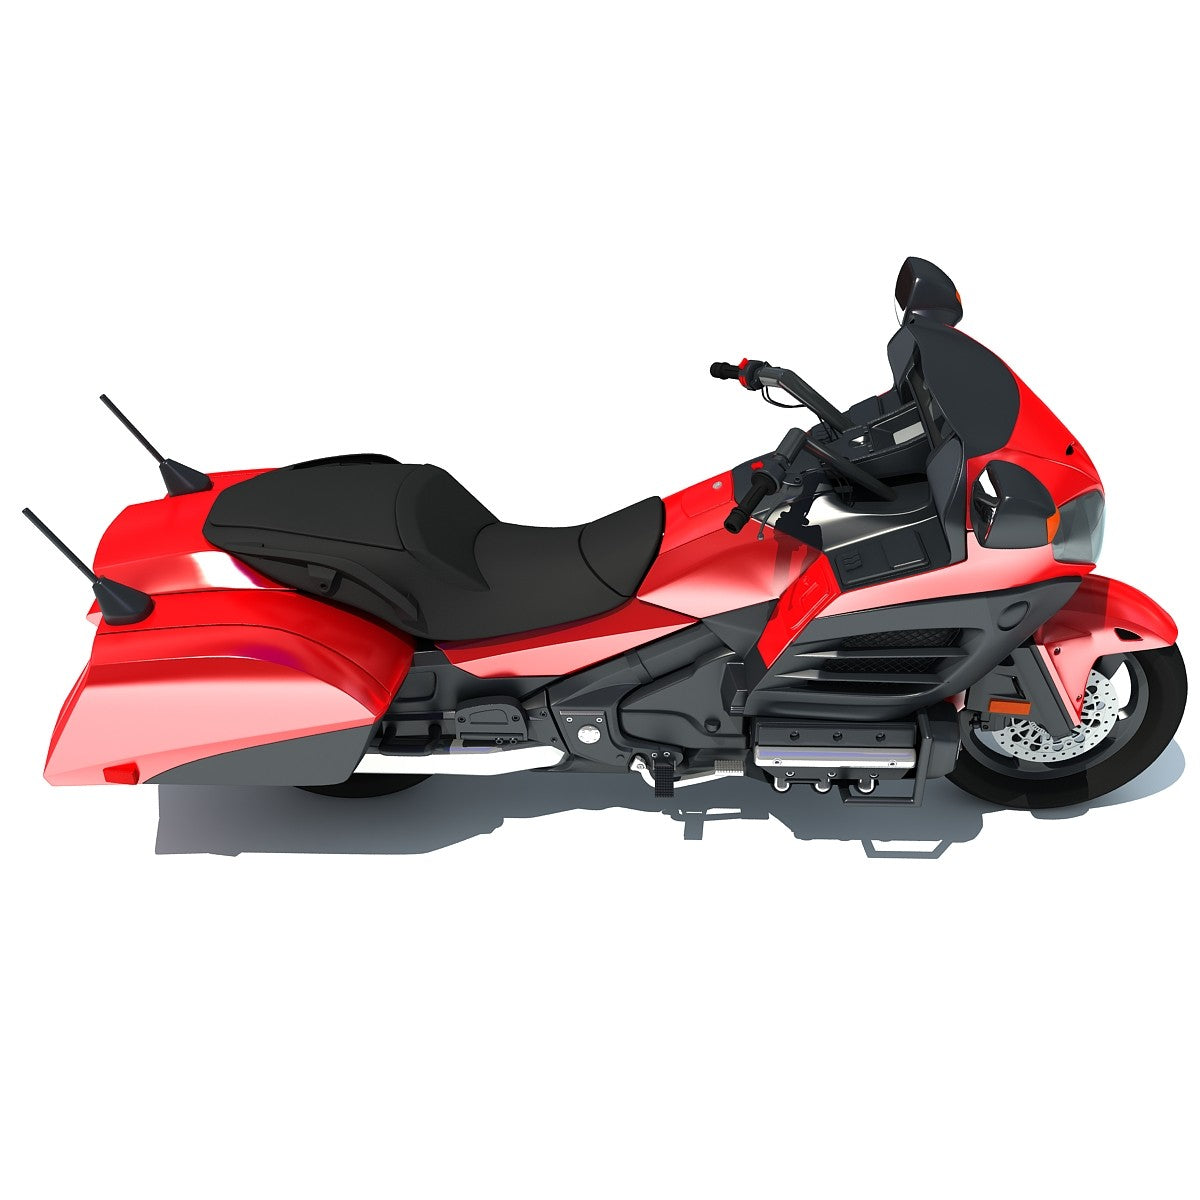 Honda Goldwing Motorcycle 3D Model